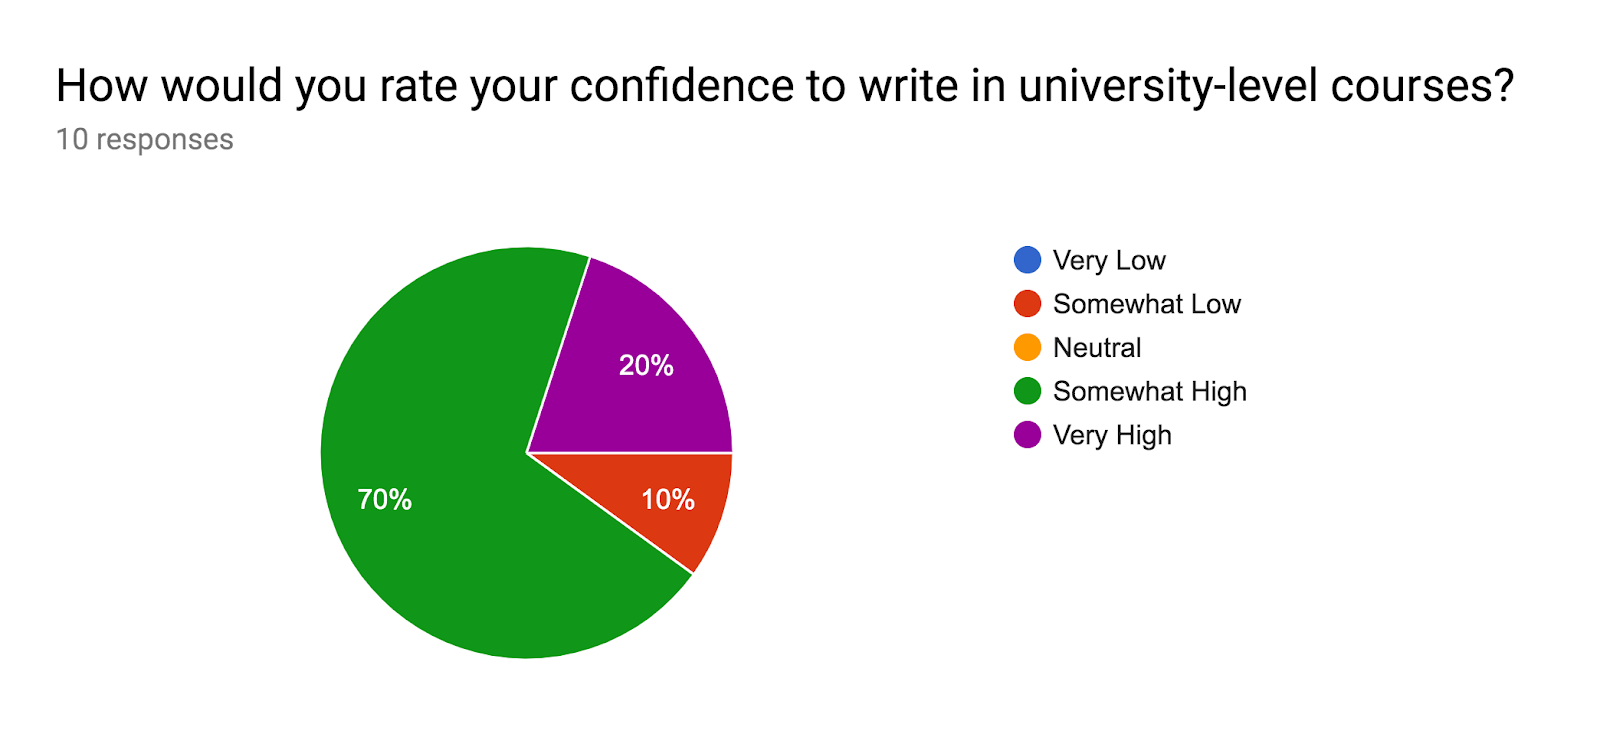 Forms response chart. Question title: How would you rate your confidence to write in university-level courses?. Number of responses: 10 responses.